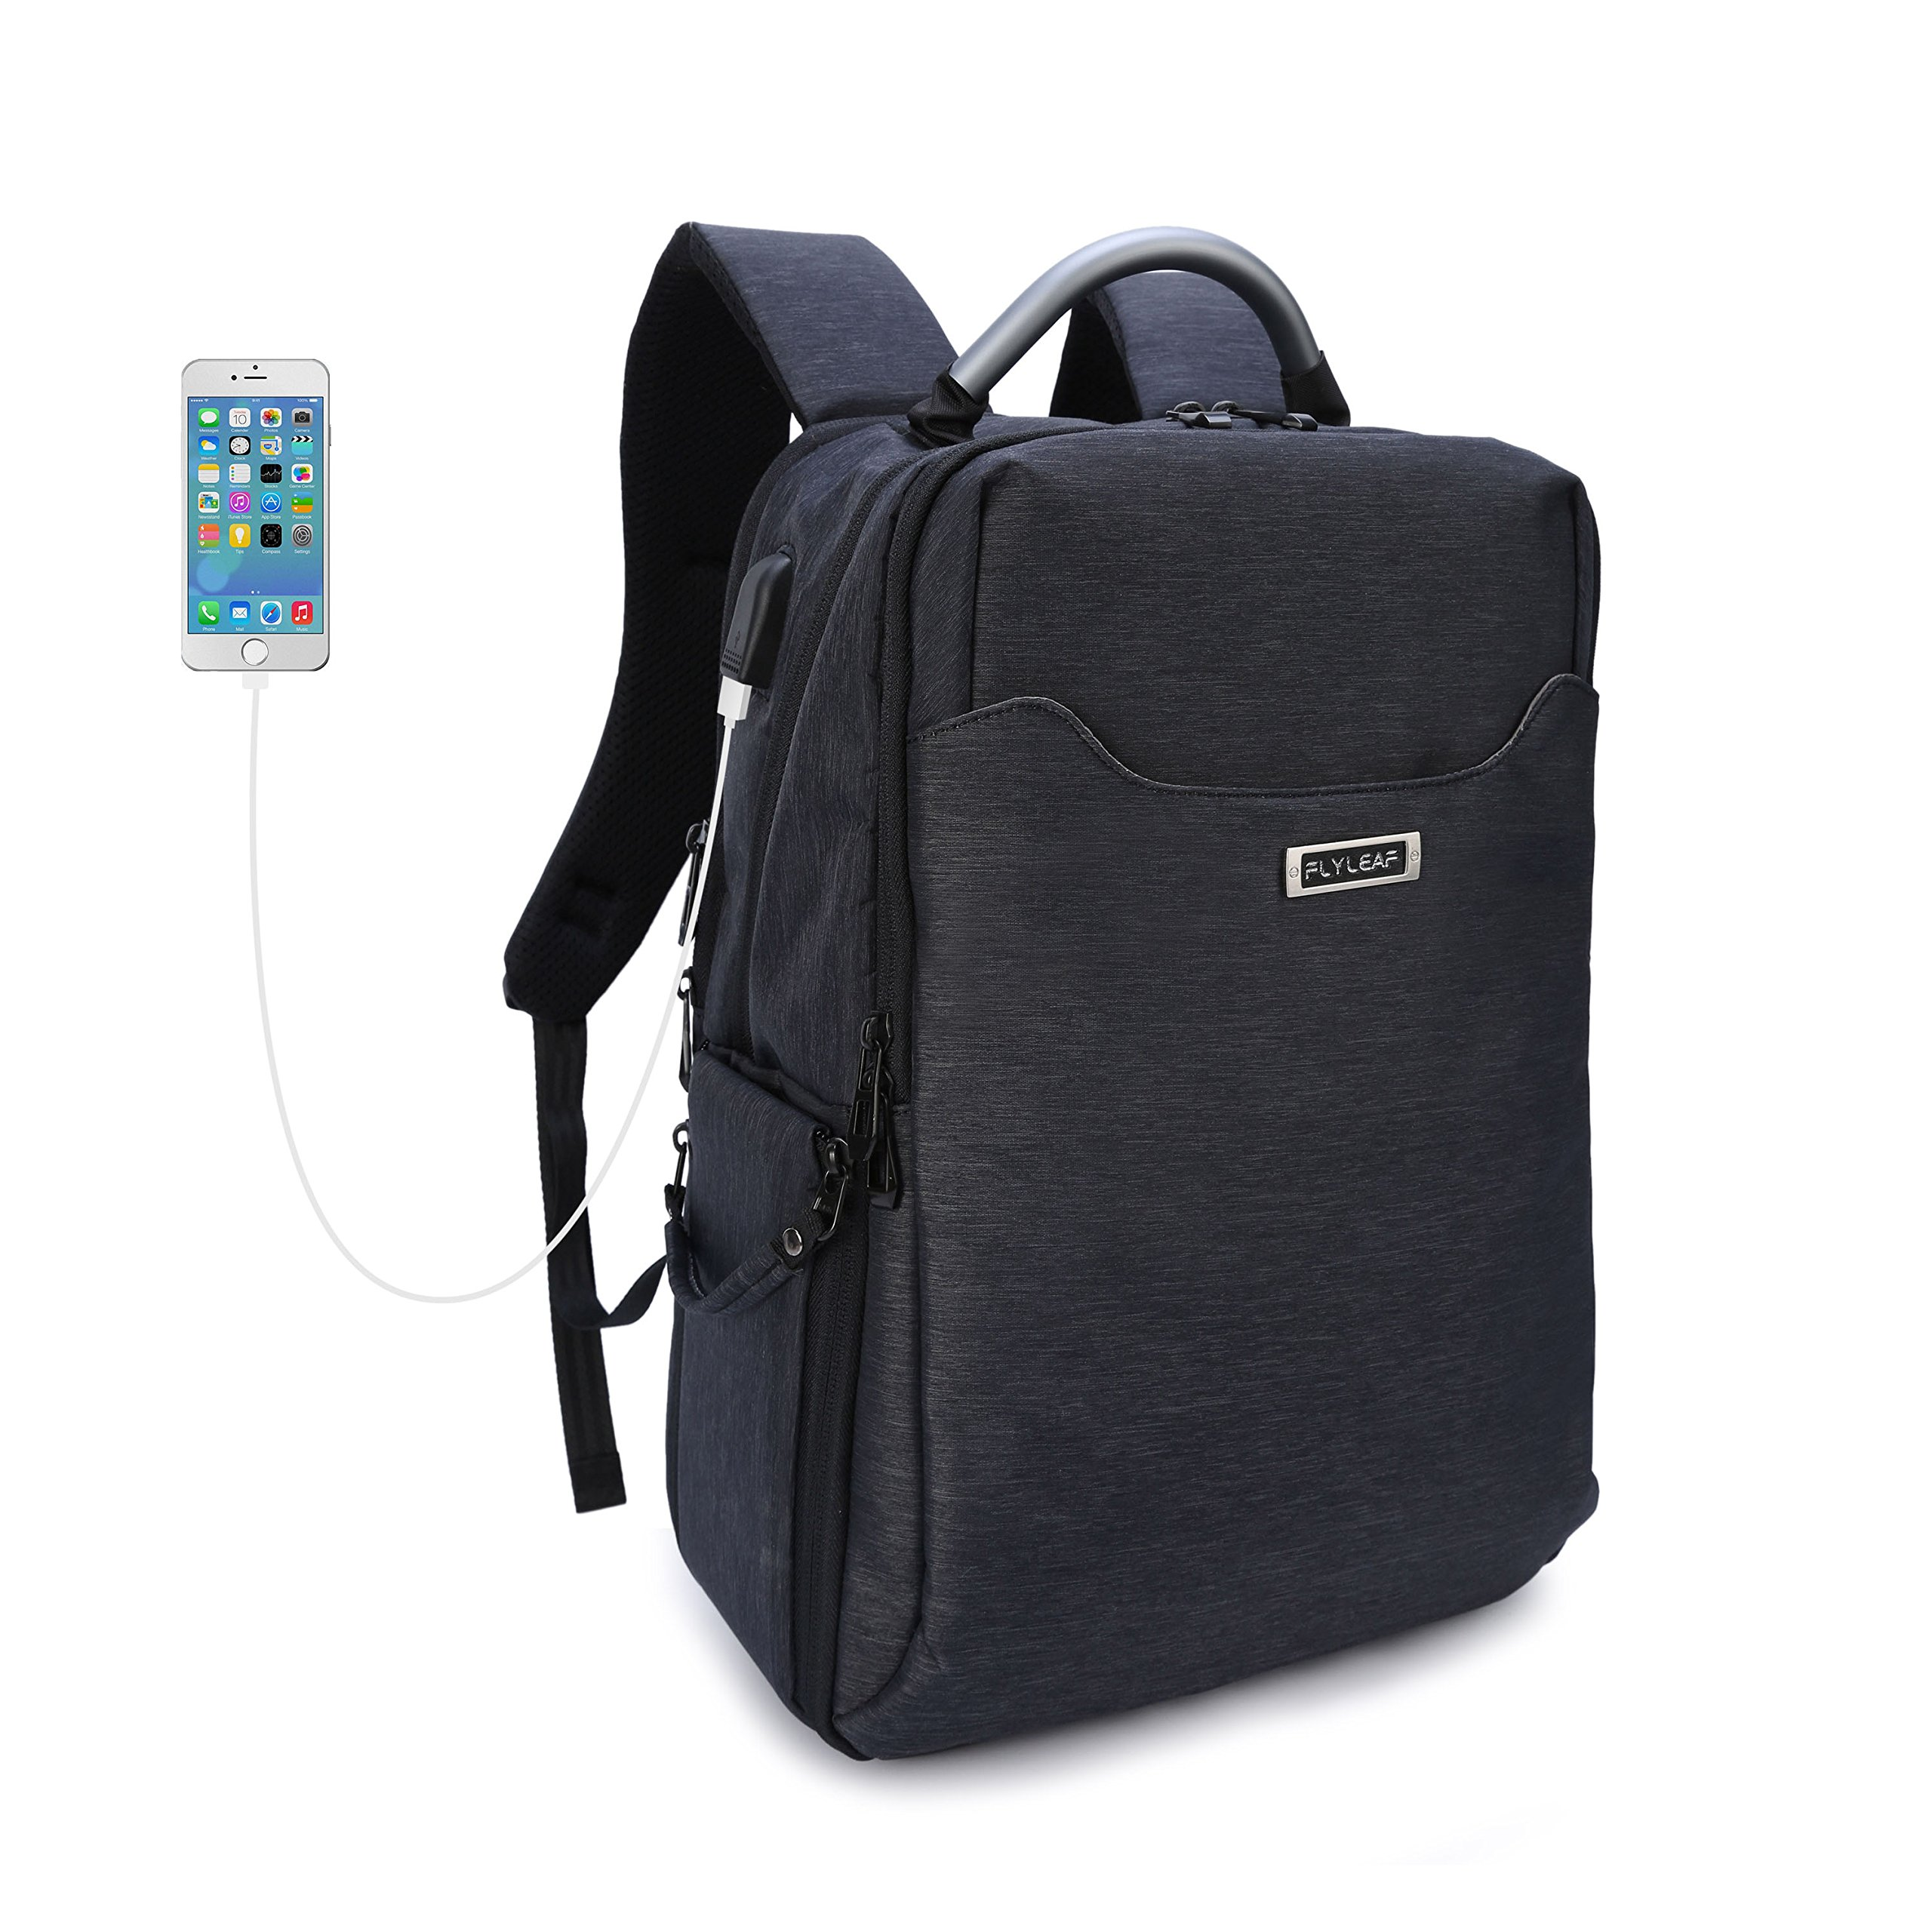 Fashion Waterproof Multifunctional Travel DSLR/SLR Camera Backpack Hiking Laptop Anti-Theft Camera Bag with USB Charging Port Compatible with Canon Nikon Sony SLR, Lenses, Tripod, 14 inch Laptop